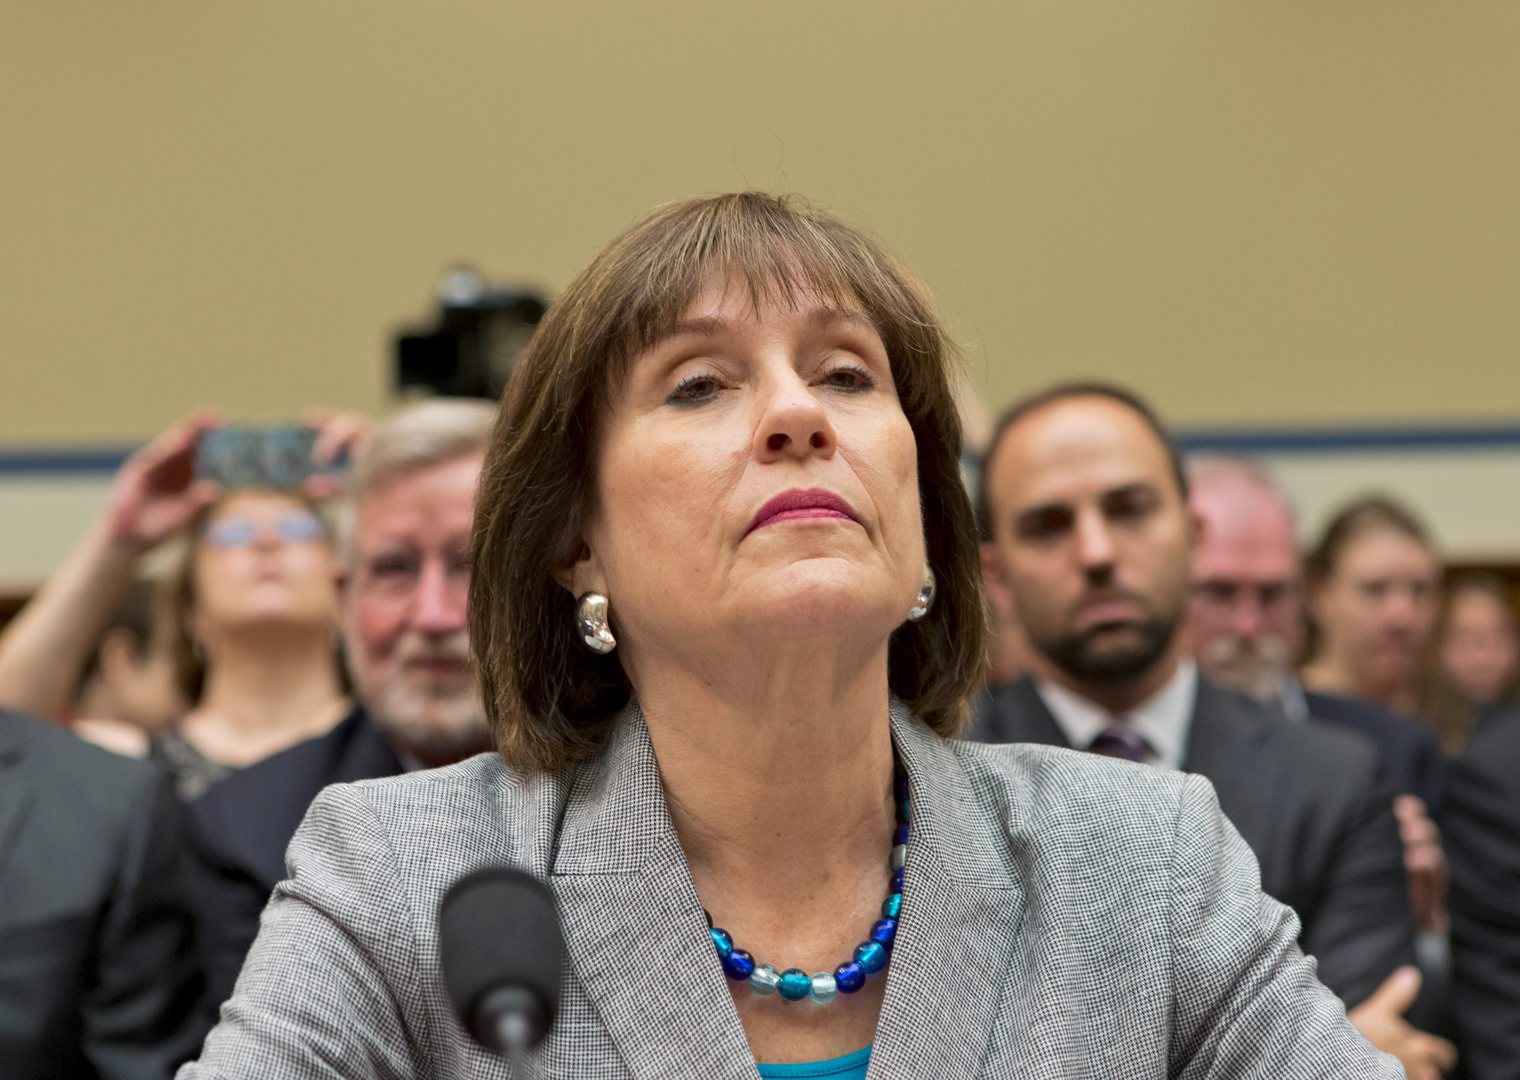 Emails show IRS' Lois Lerner specifically targeted tea party - Washington Times